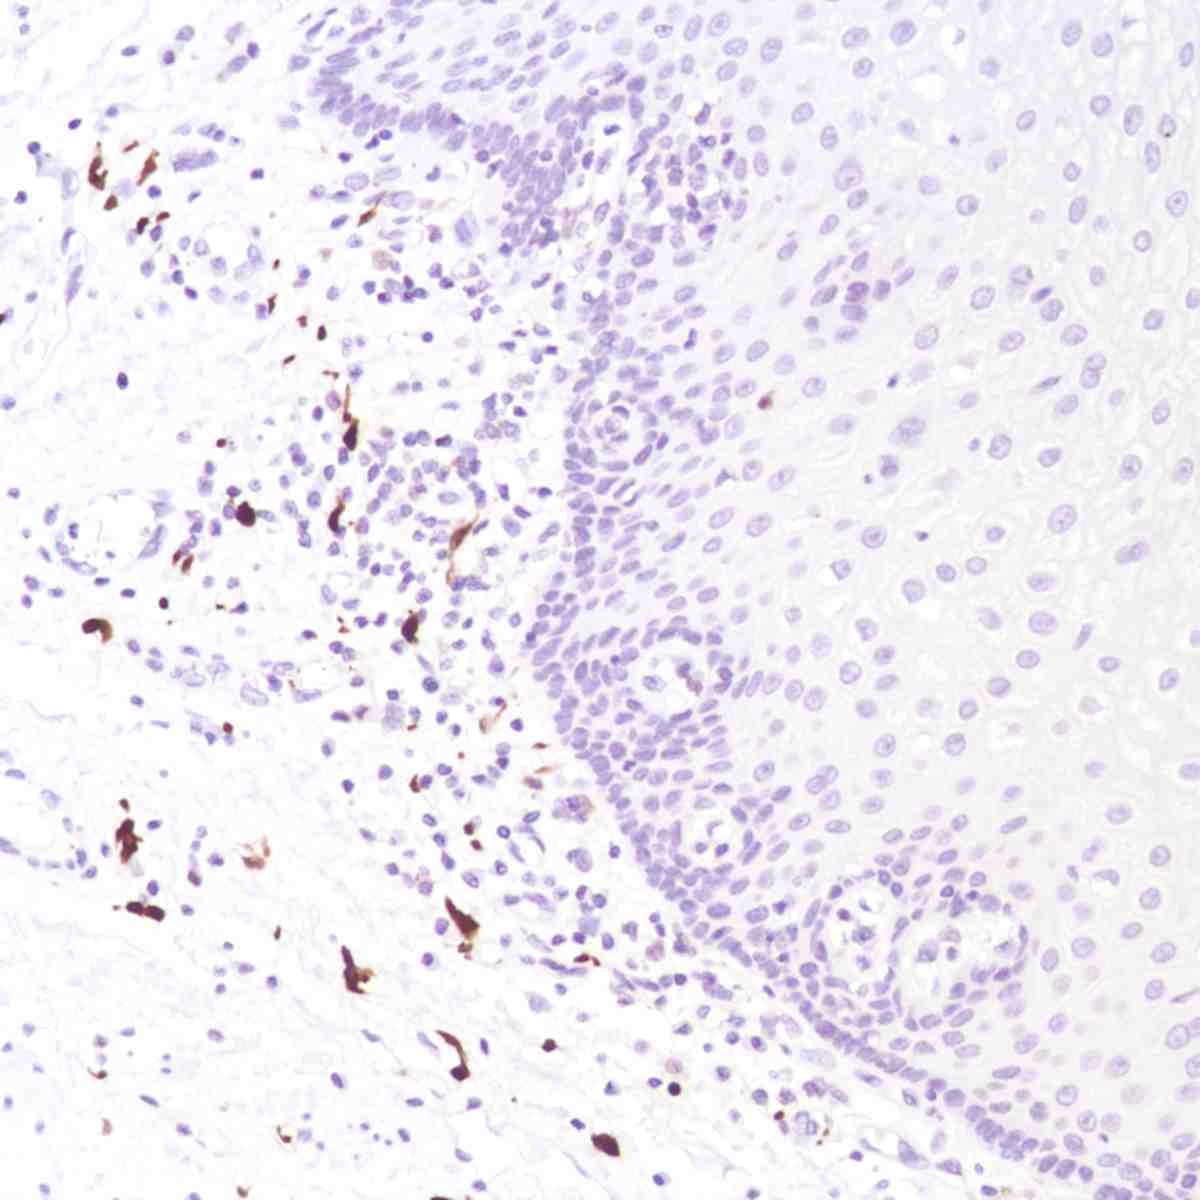 Human Esophagus stained with anti-FXIIIa antibody